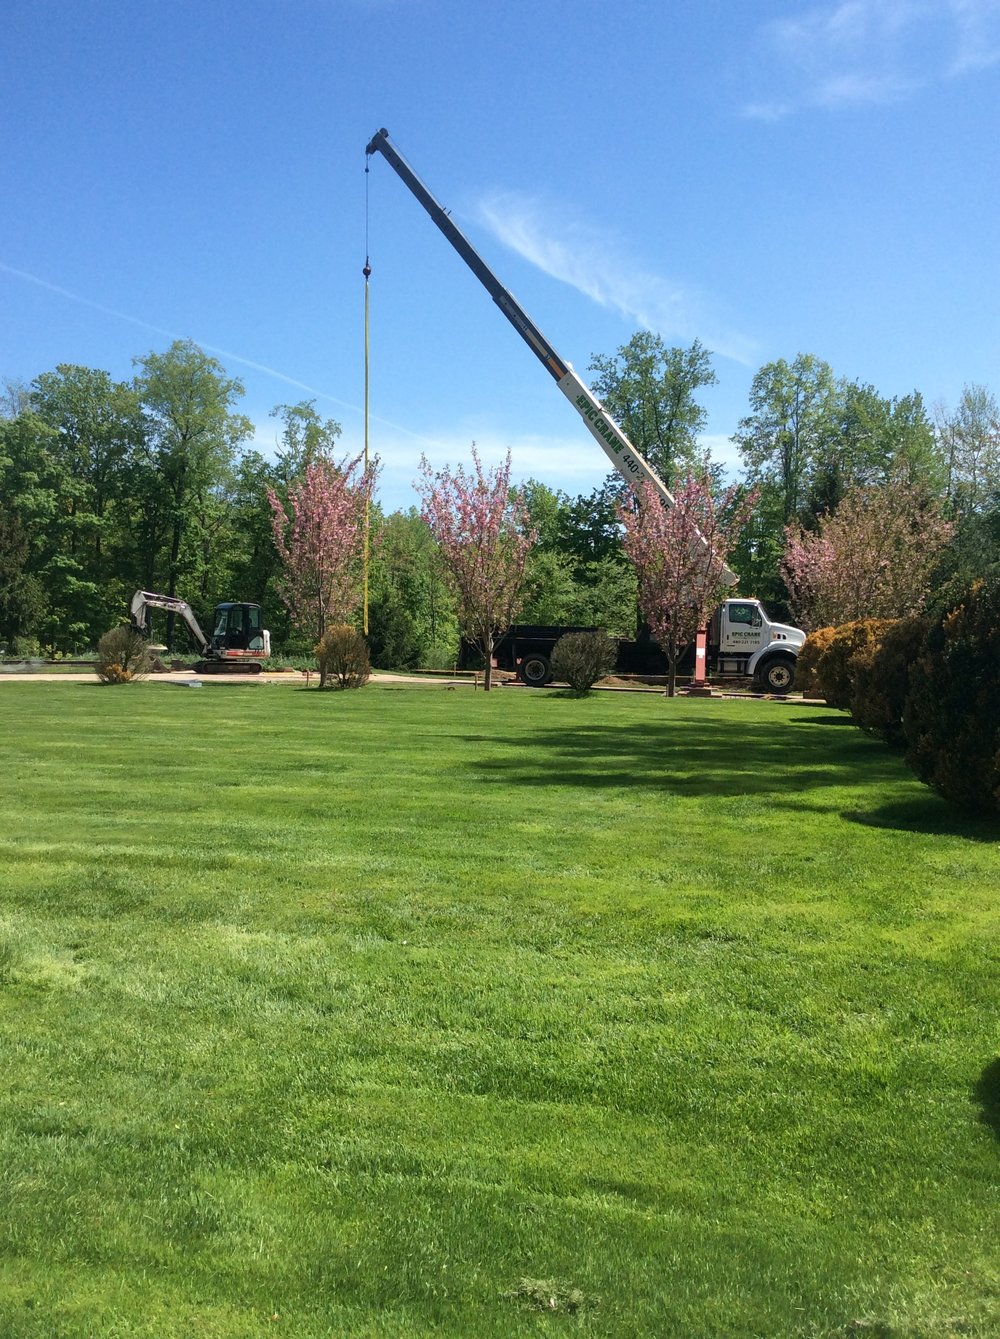 Top lawn care and snow removal in Chagrin Falls, OH